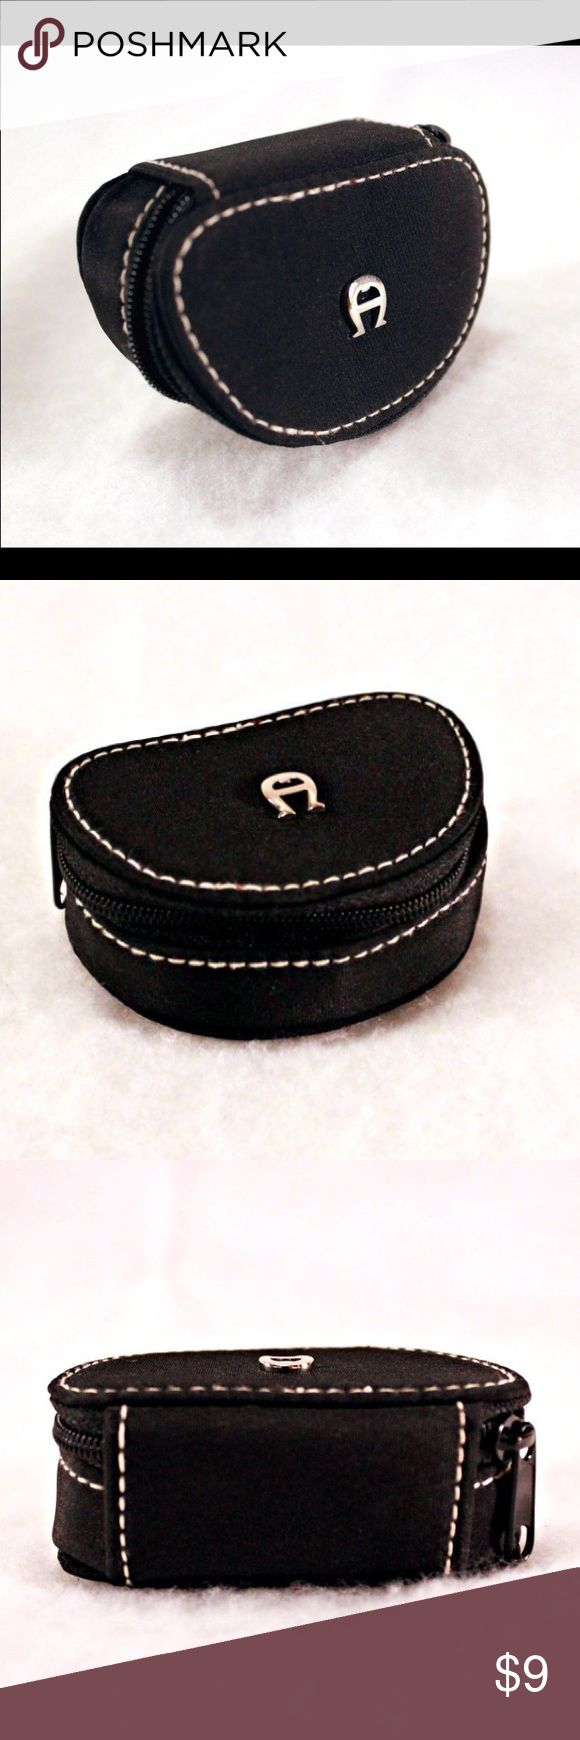 "ETIENNE AIGNER Travel Jewelry Case ETIENNE AIGNER Travel Jewelry Case. Black Satin with White Stitching. Zip Closure and Red Interior.  3x2x1 1/8"" Perfect for storing  Rings and Earrings While On the Go.   Orig. 18.00. Etienne Aigner Bags Travel Bags"